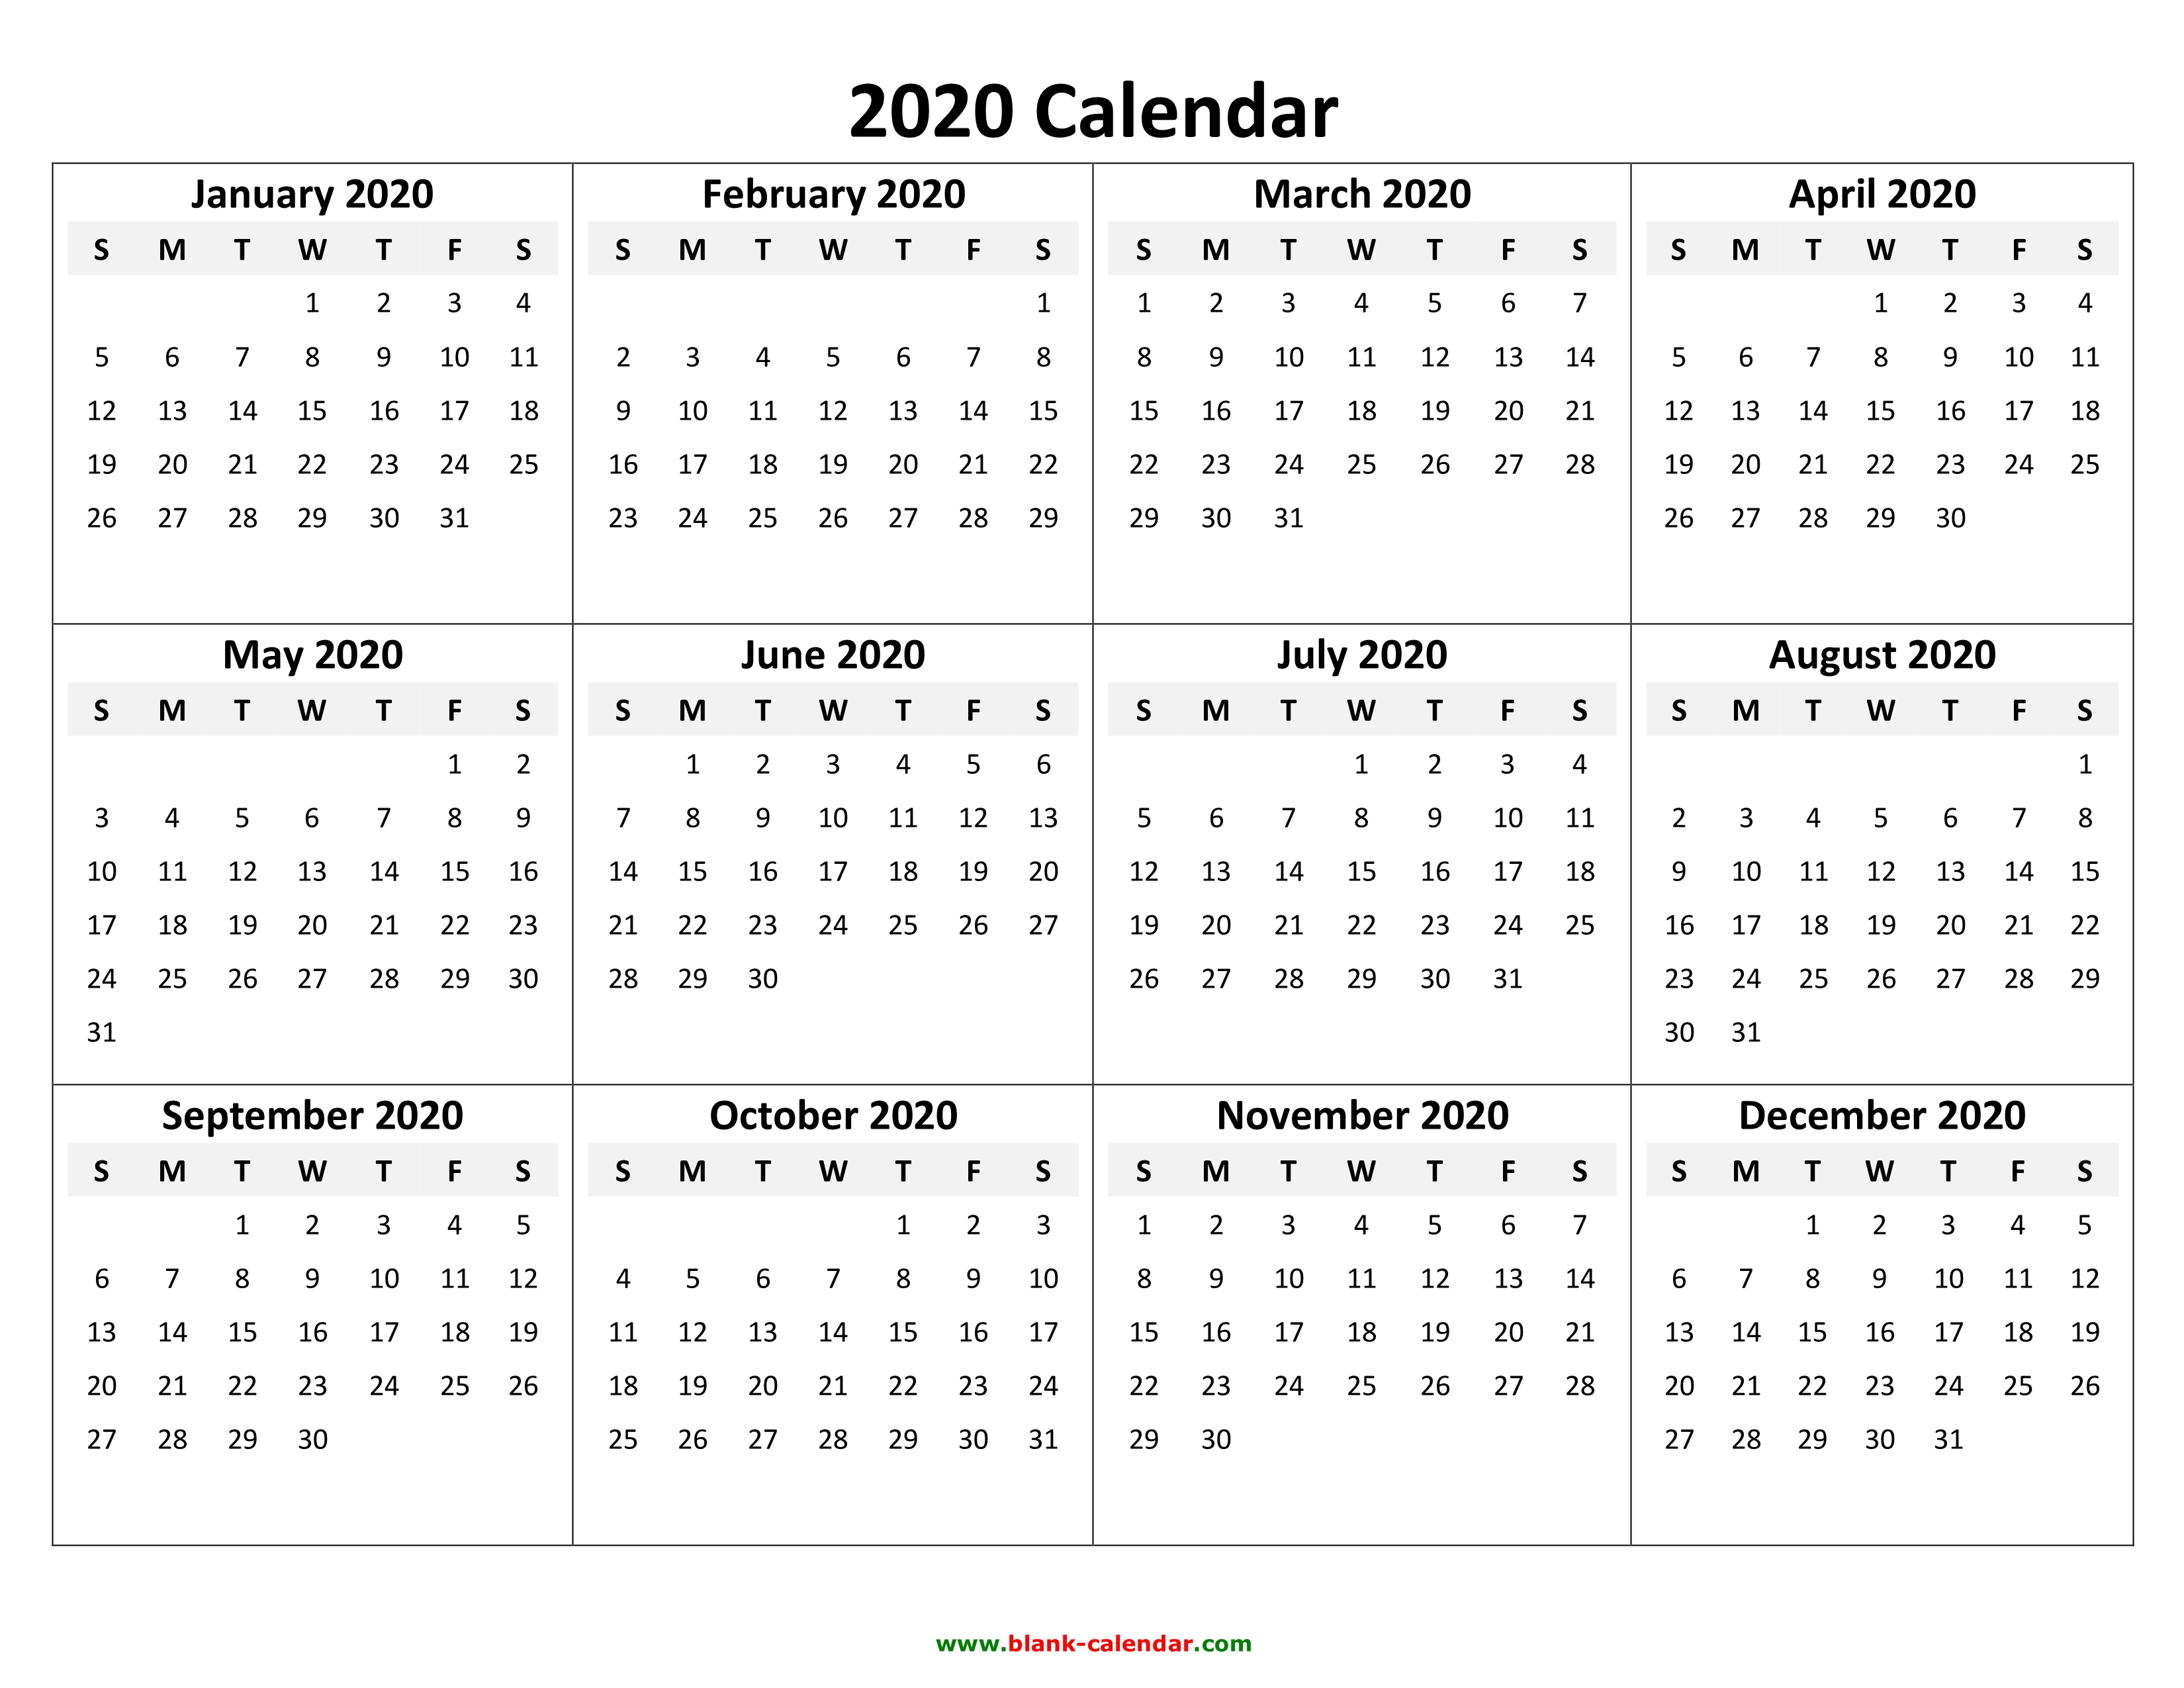 Yearly Calendar 2020 | Free Download And Print within 2020 Calendars To Fill In